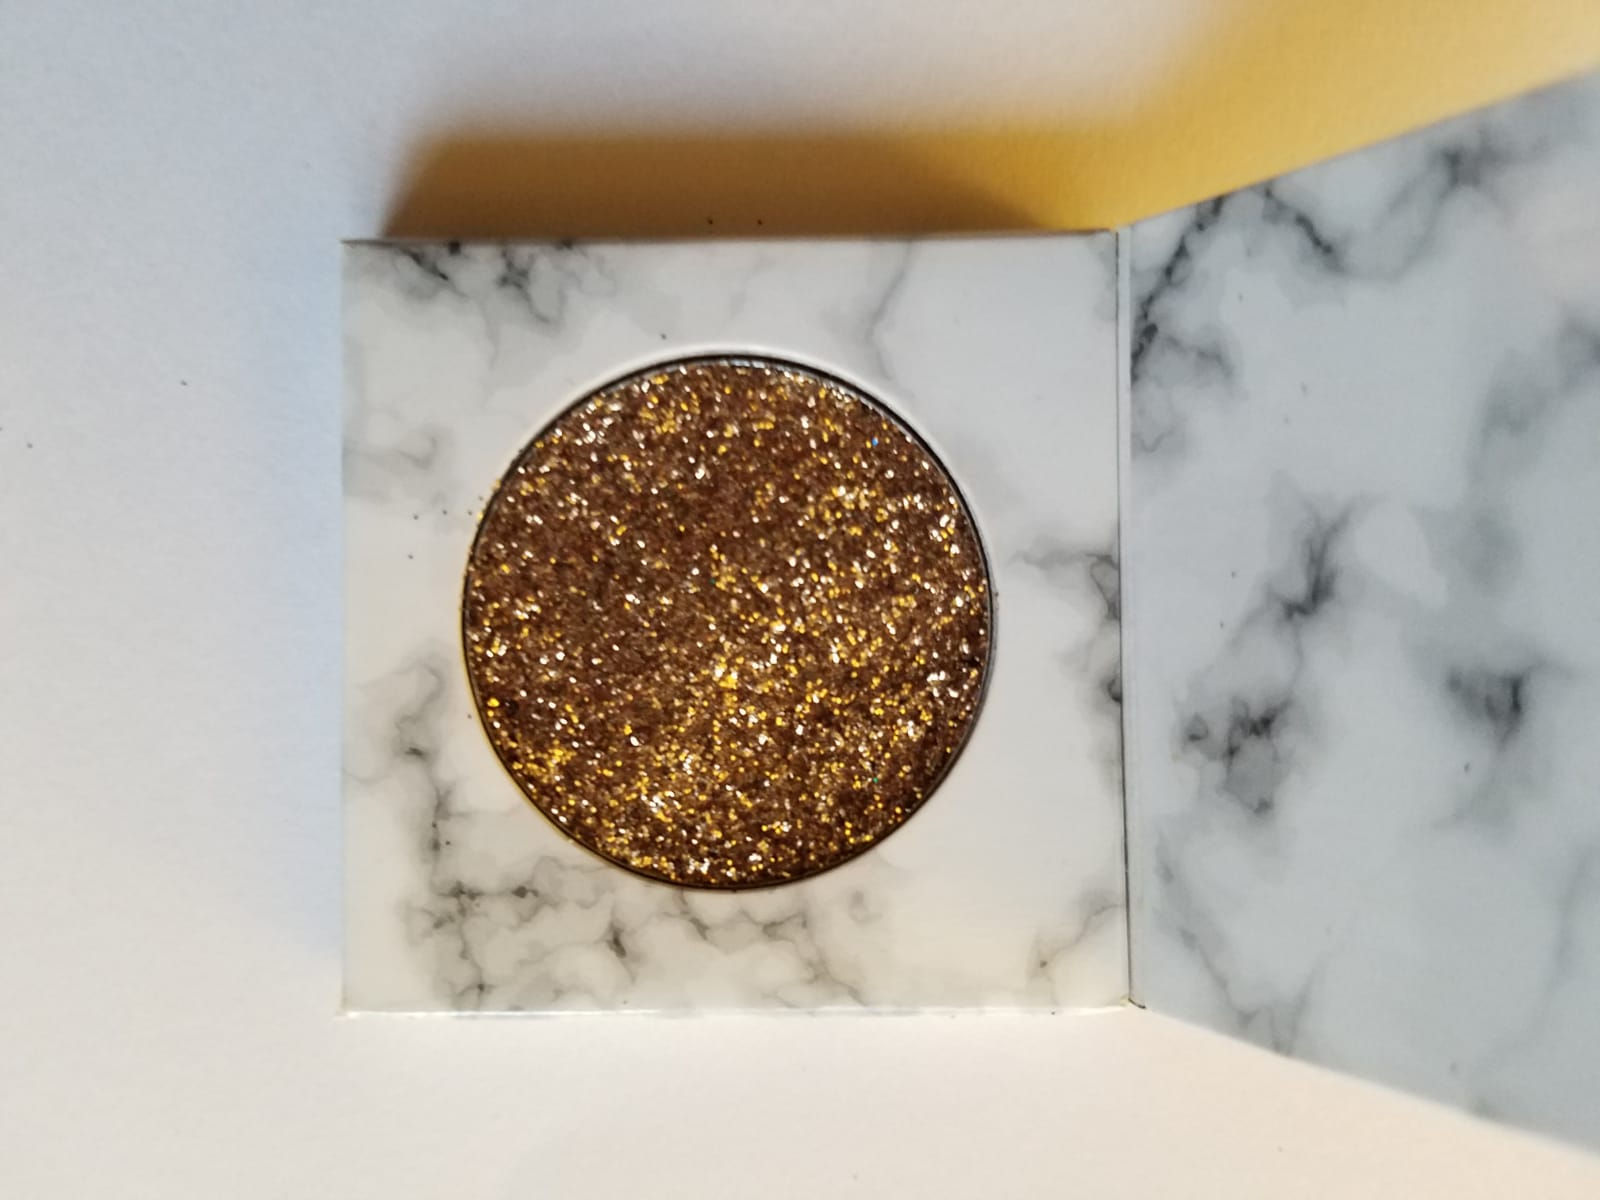 Golden Goddess Glitter Single Eyeshadow